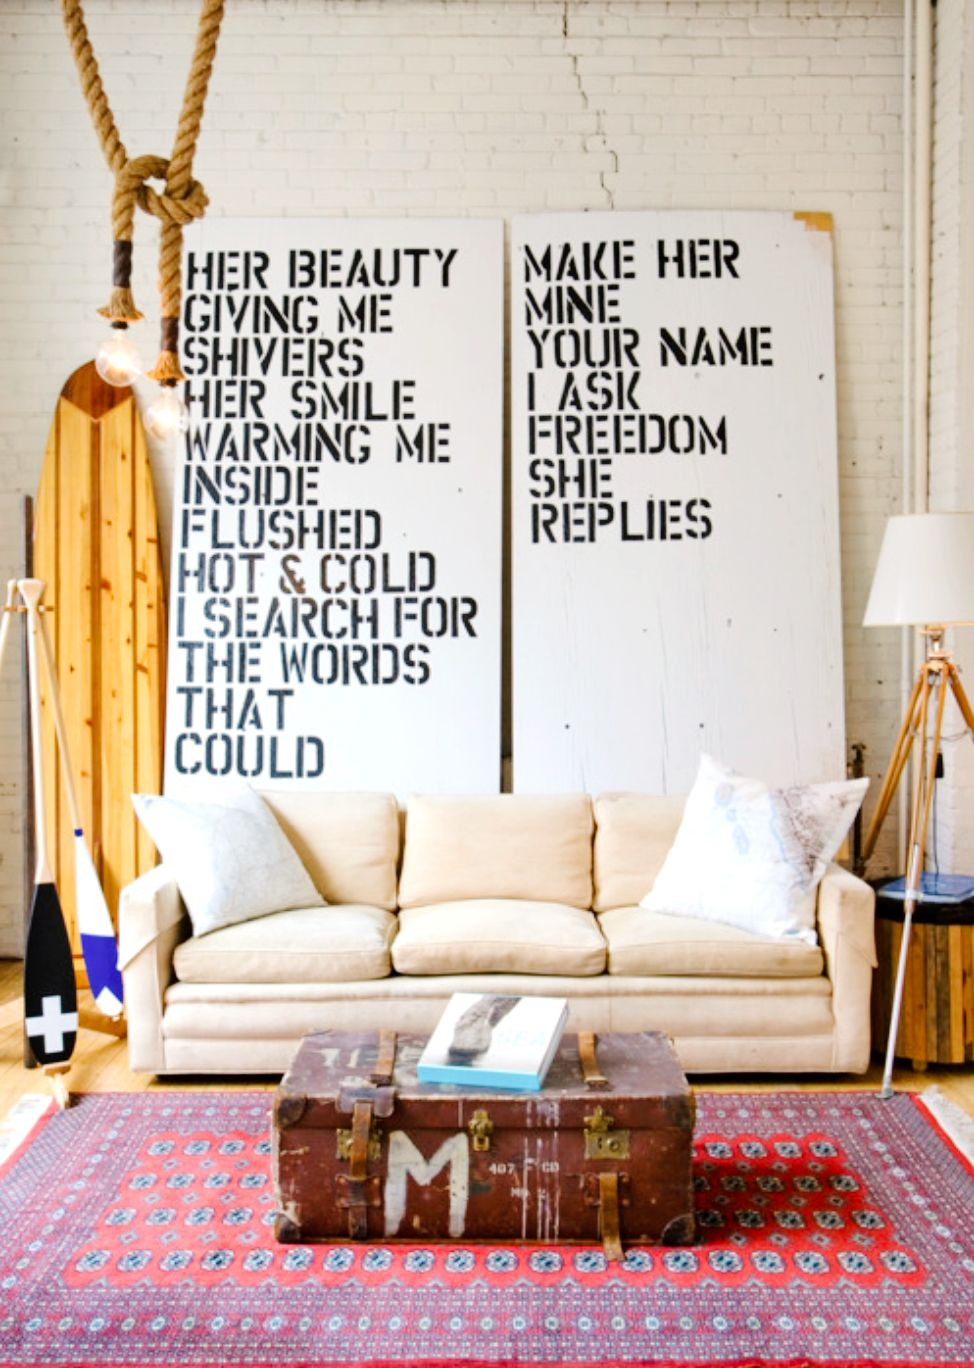 Your Favorite Quotes Are Now Words of Art   White brick walls, Trunk ...